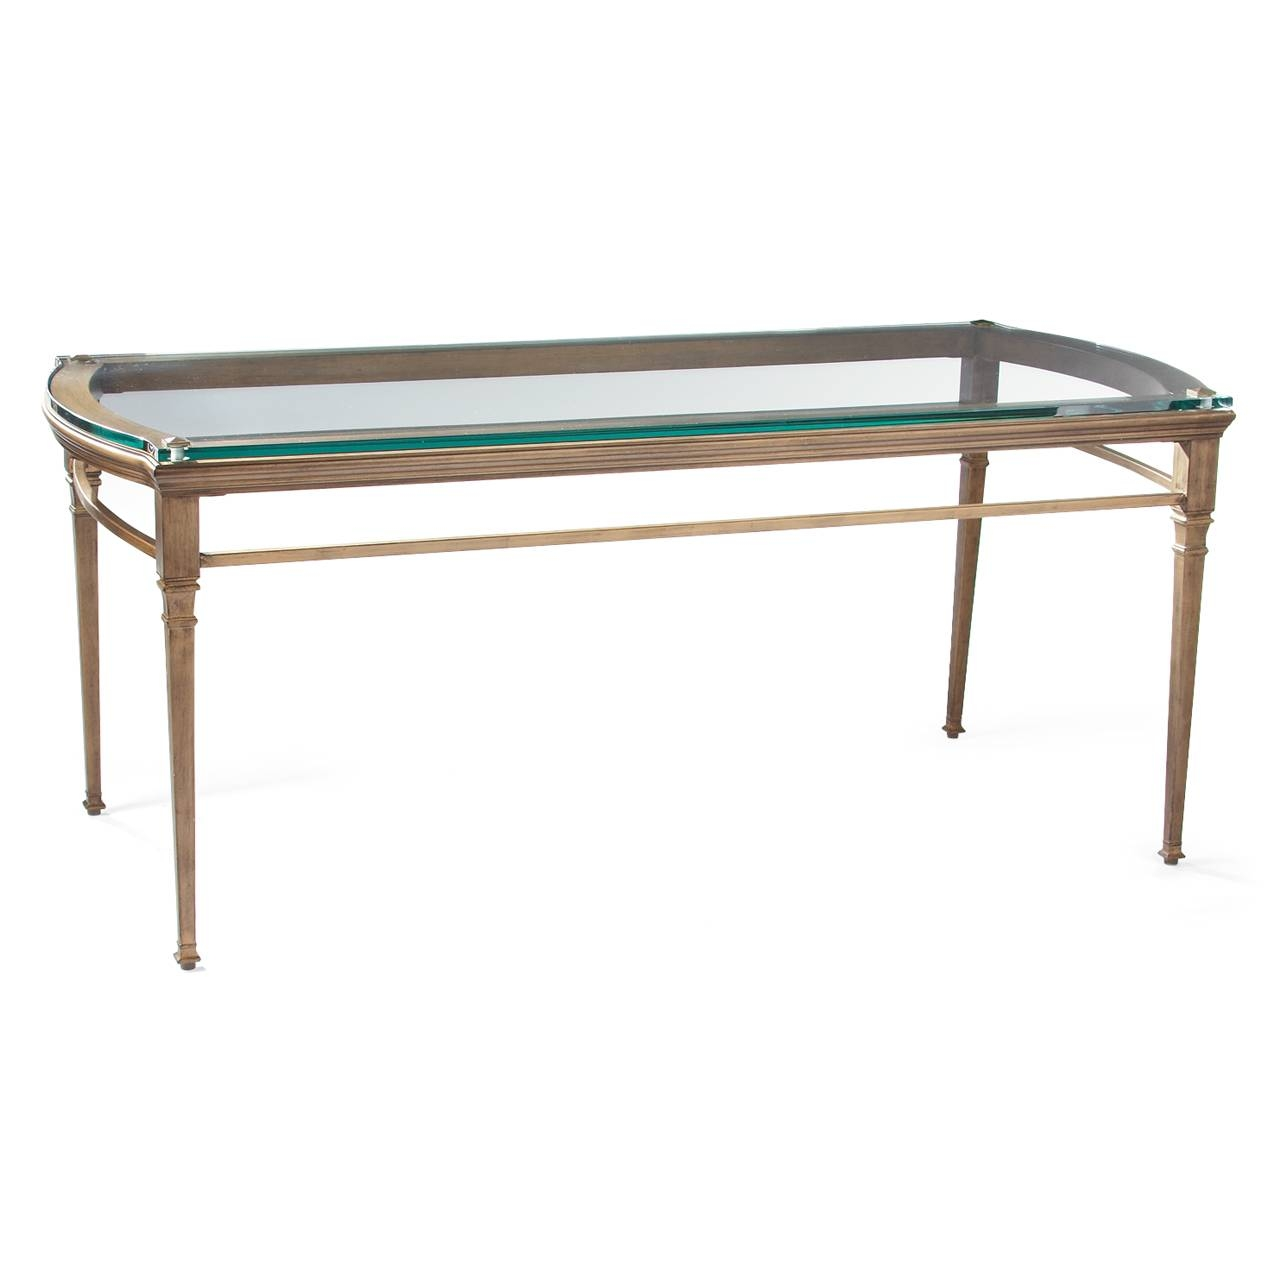 Townsend Oval Coffee Table – Bombay Canada with regard to Bombay Coffee Tables (Image 30 of 30)